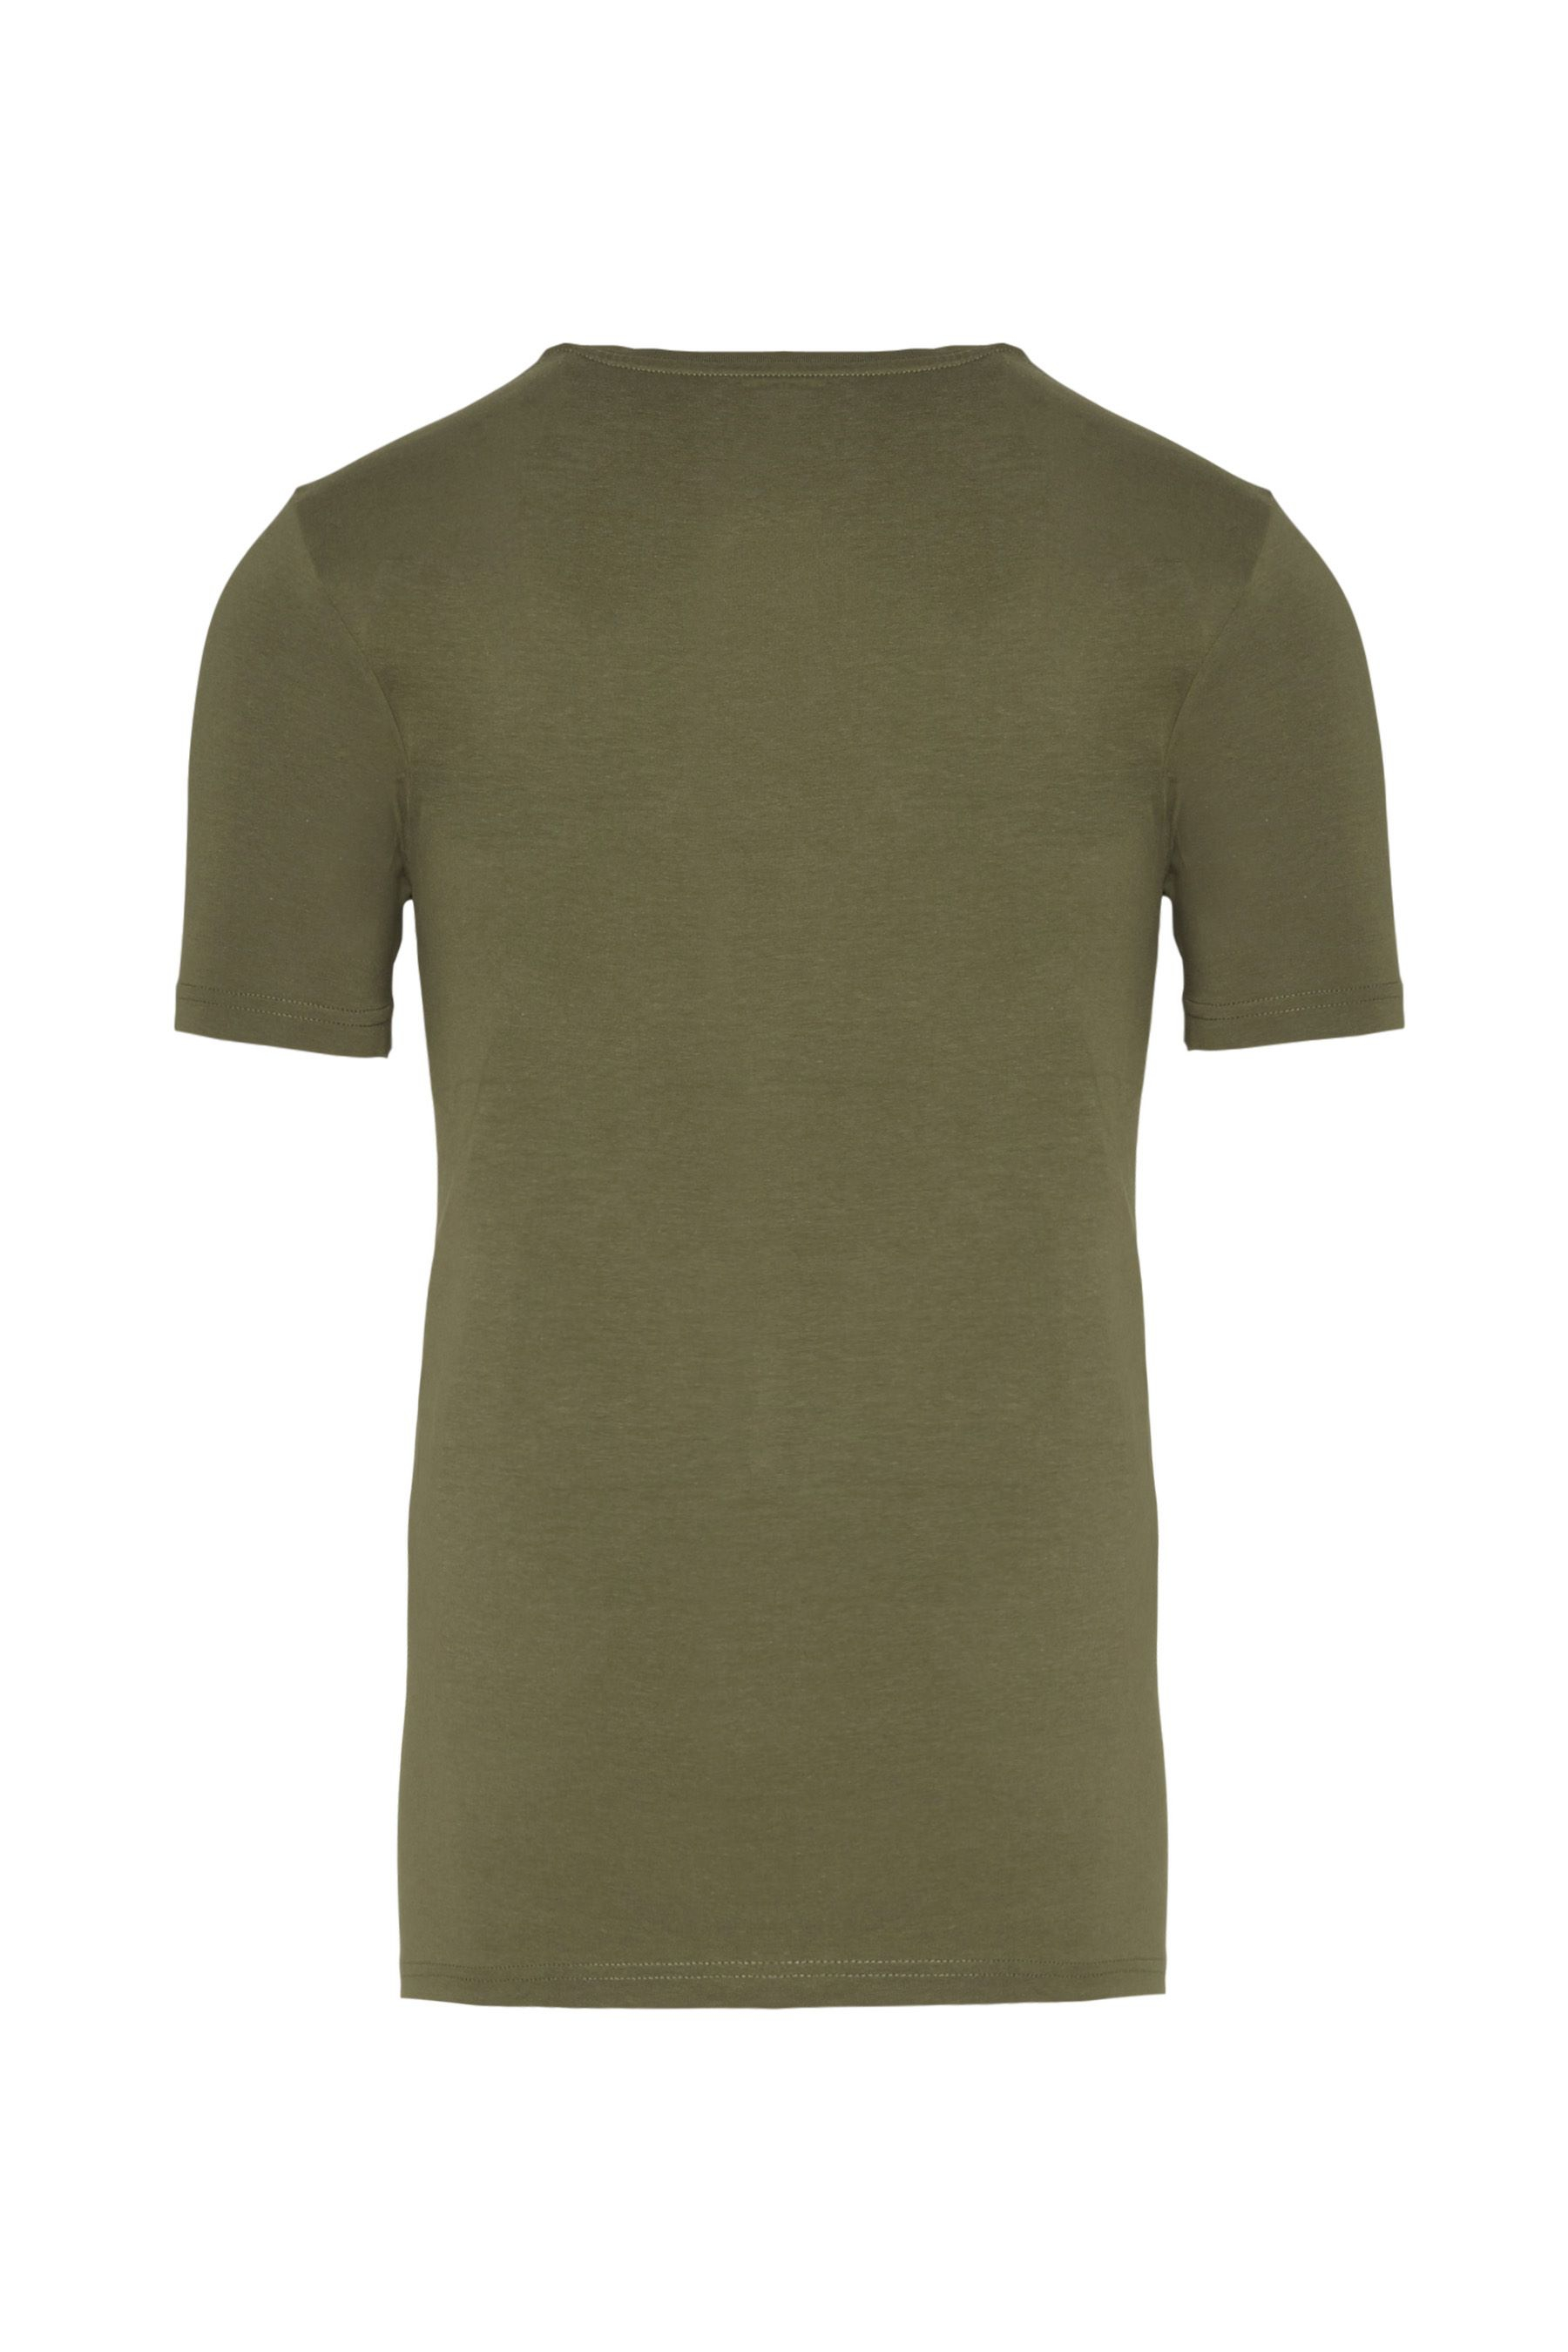 TI002J - T-SHIRT V-NECK 2